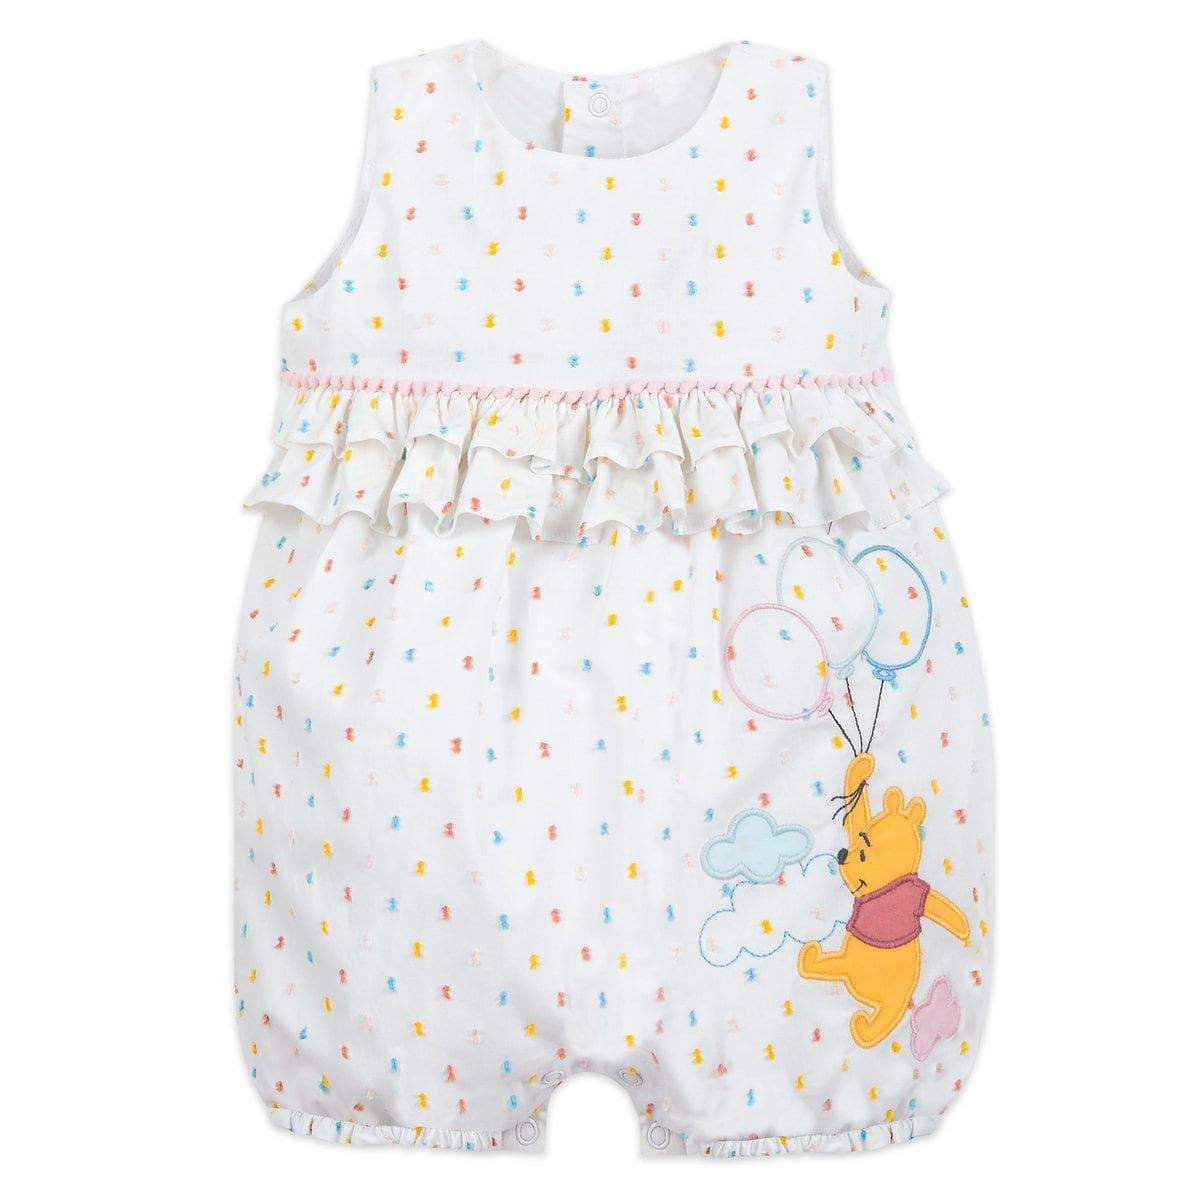 Winnie the Pooh Bubble Romper for Baby shopDisney